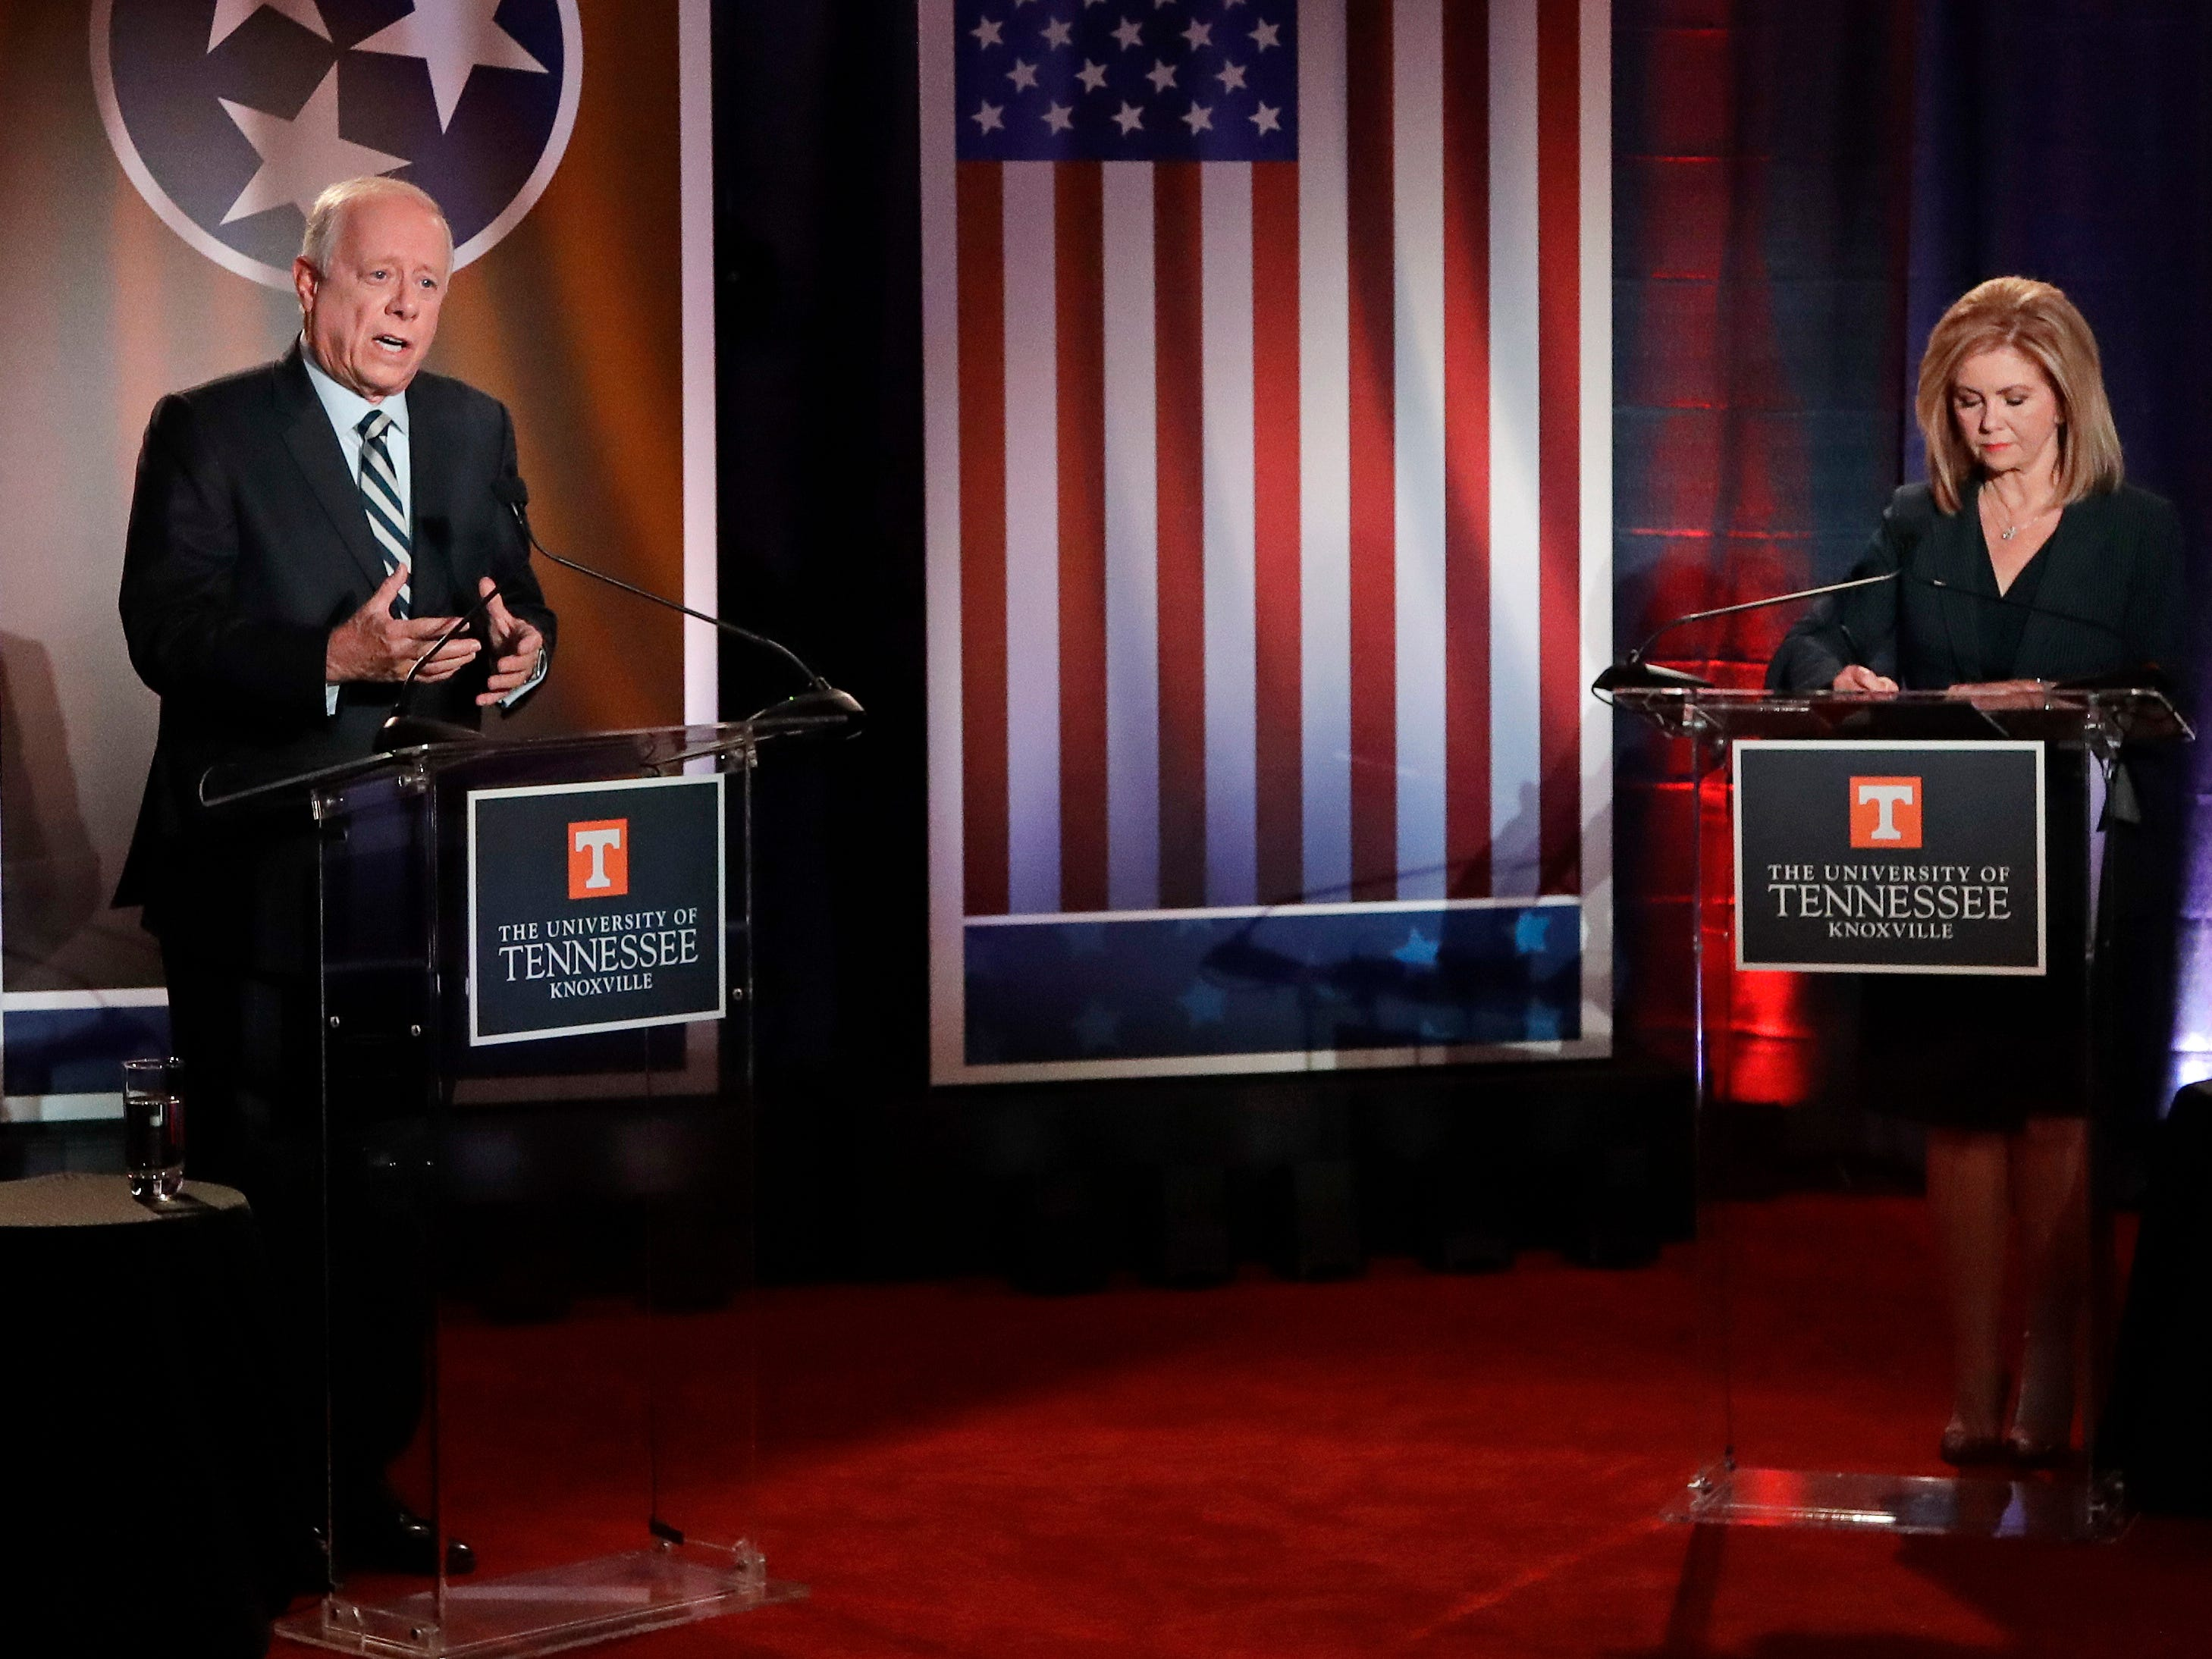 Democratic candidate and former Gov. Phil Bredesen, left, speaks during the 2018 Tennessee U.S. Senate Debate with Republican U.S. Rep. Marsha Blackburn at The University of Tennessee Wednesday, Oct. 10, 2018, in Knoxville, Tenn.